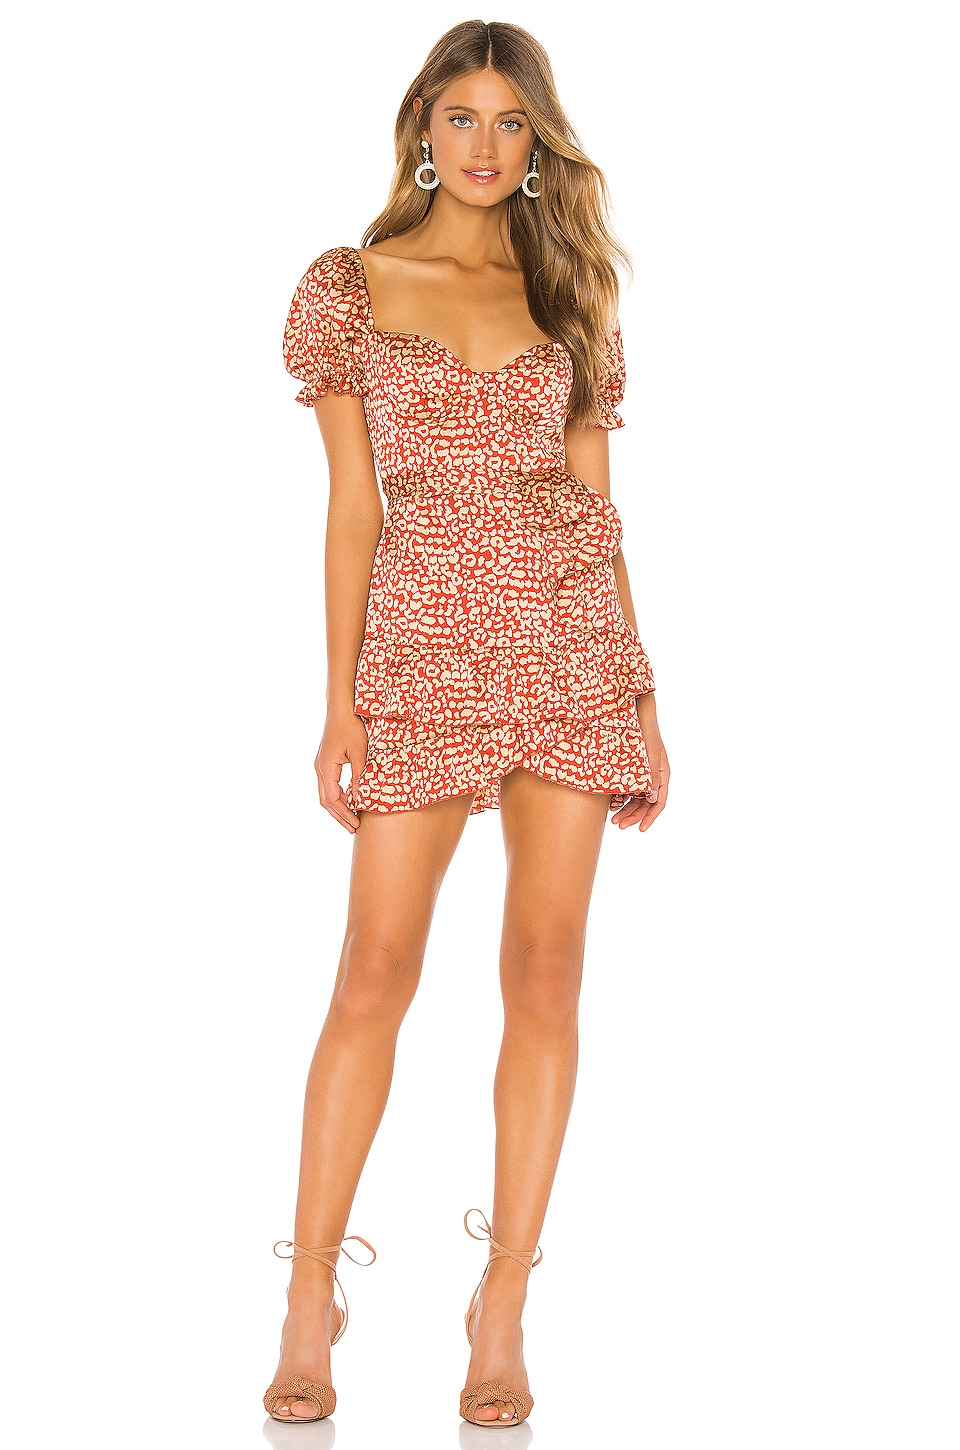 MAJORELLE Shiloh Mini Dress in Red Leopard